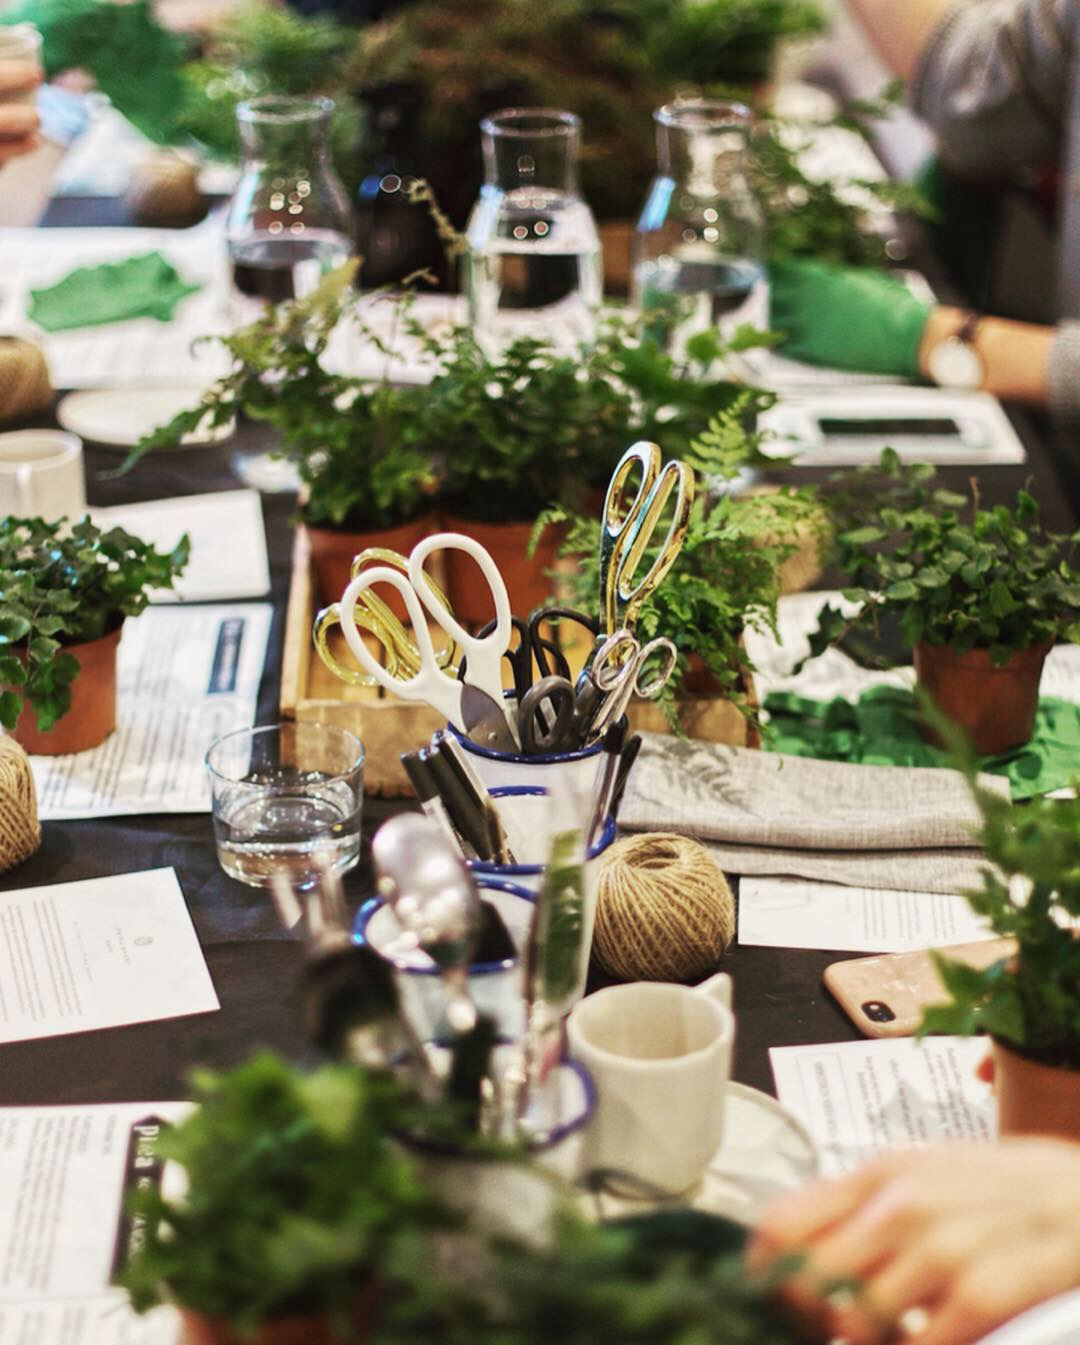 Pilea Plant Shop Kokedama Workshop Table.JPG